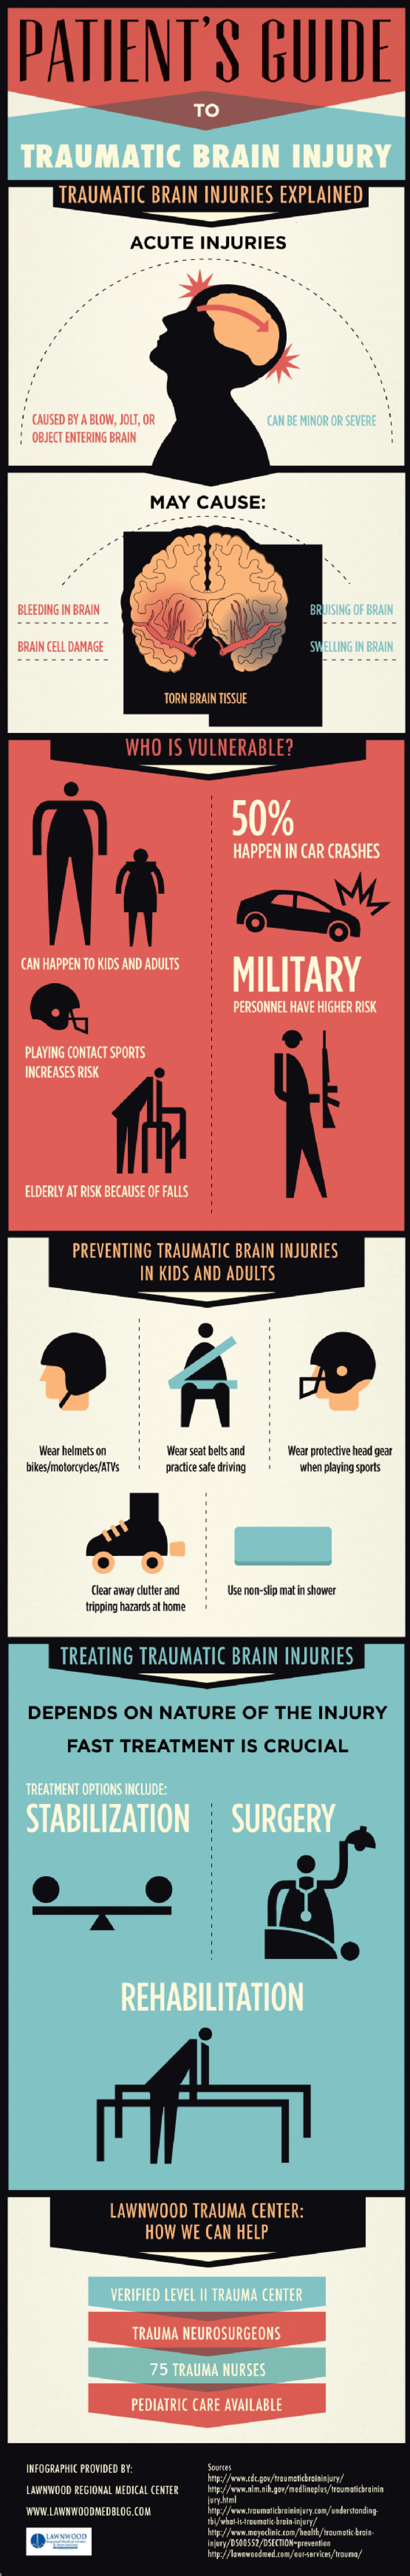 patients-guide-to-traumatic-brain-injury_529119bda8439_w1500